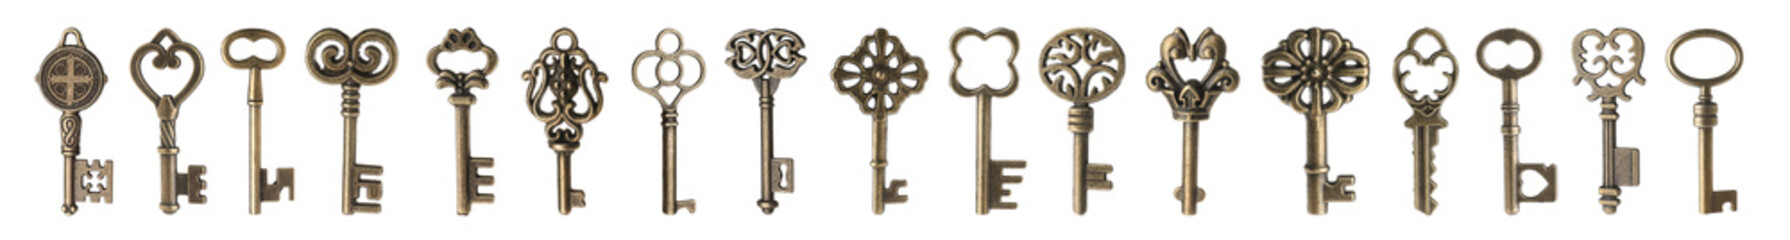 Set of bronze vintage ornate keys on white background